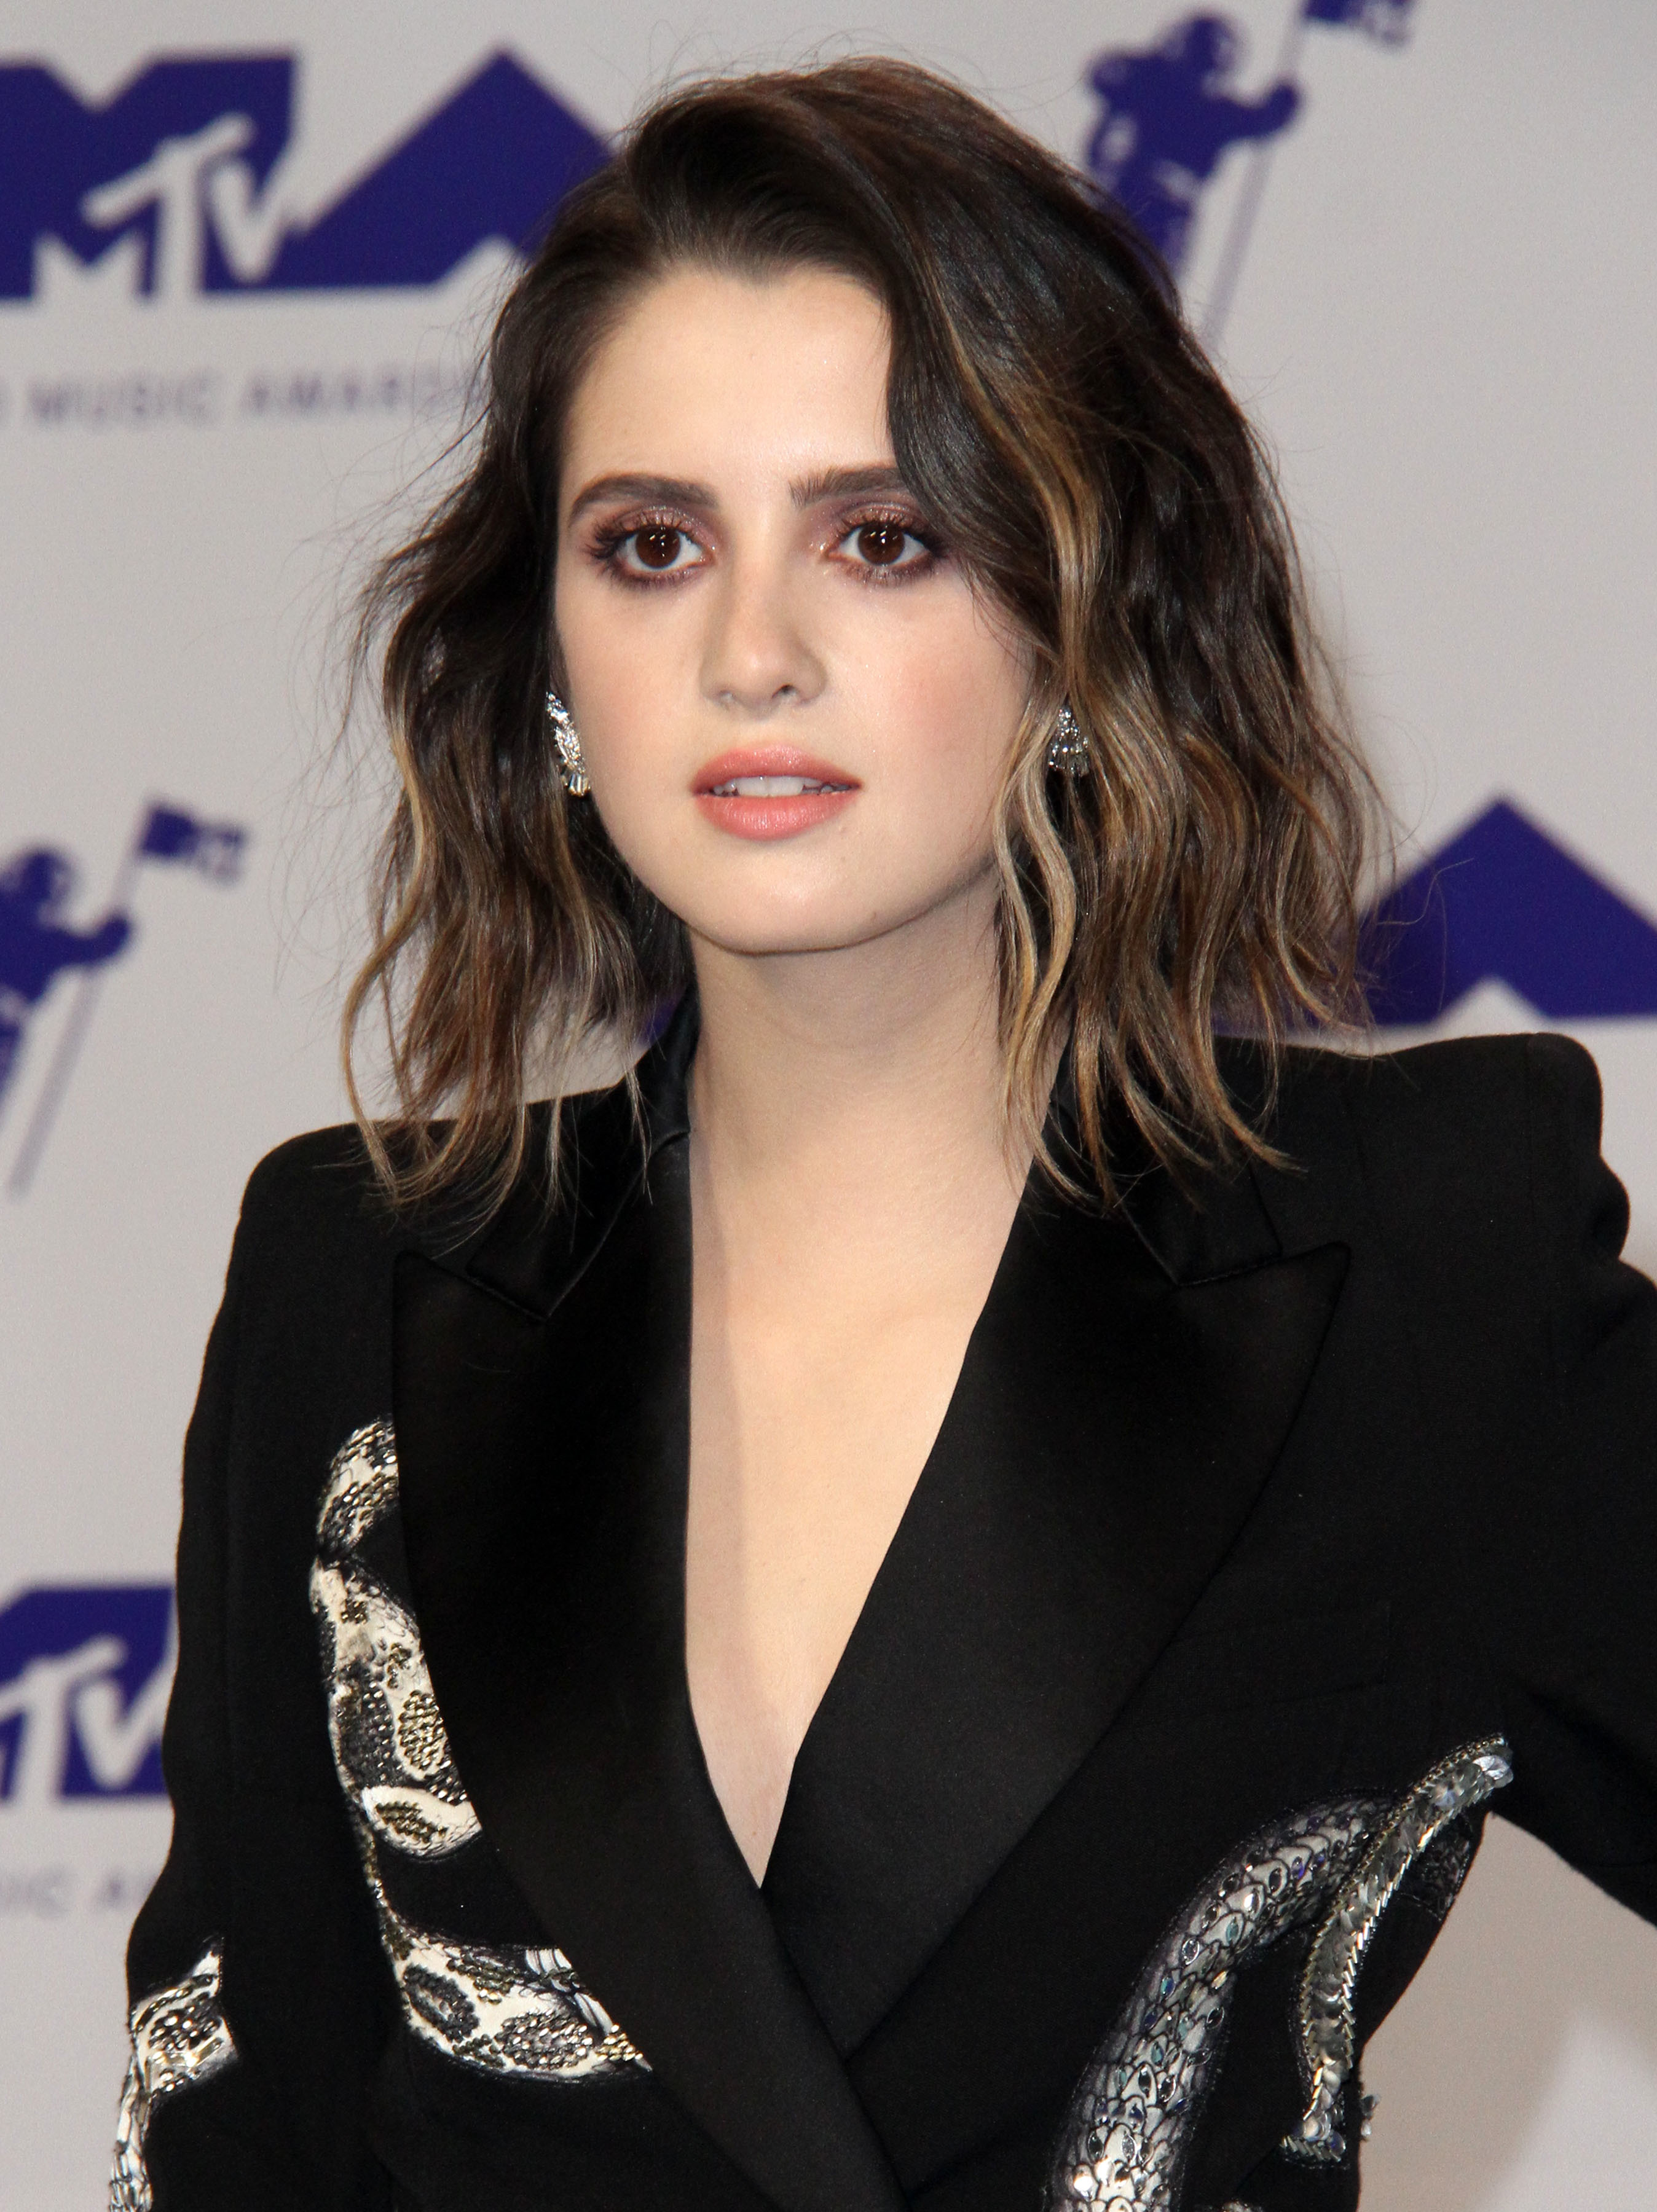 MTV Video Music Awards (VMA) 2017 Arrivals held at the Forum in Inglewood, California.  Featuring: Laura Marano Where: Los Angeles, California, United States When: 26 Aug 2017 Credit: Adriana M. Barraza/WENN.com